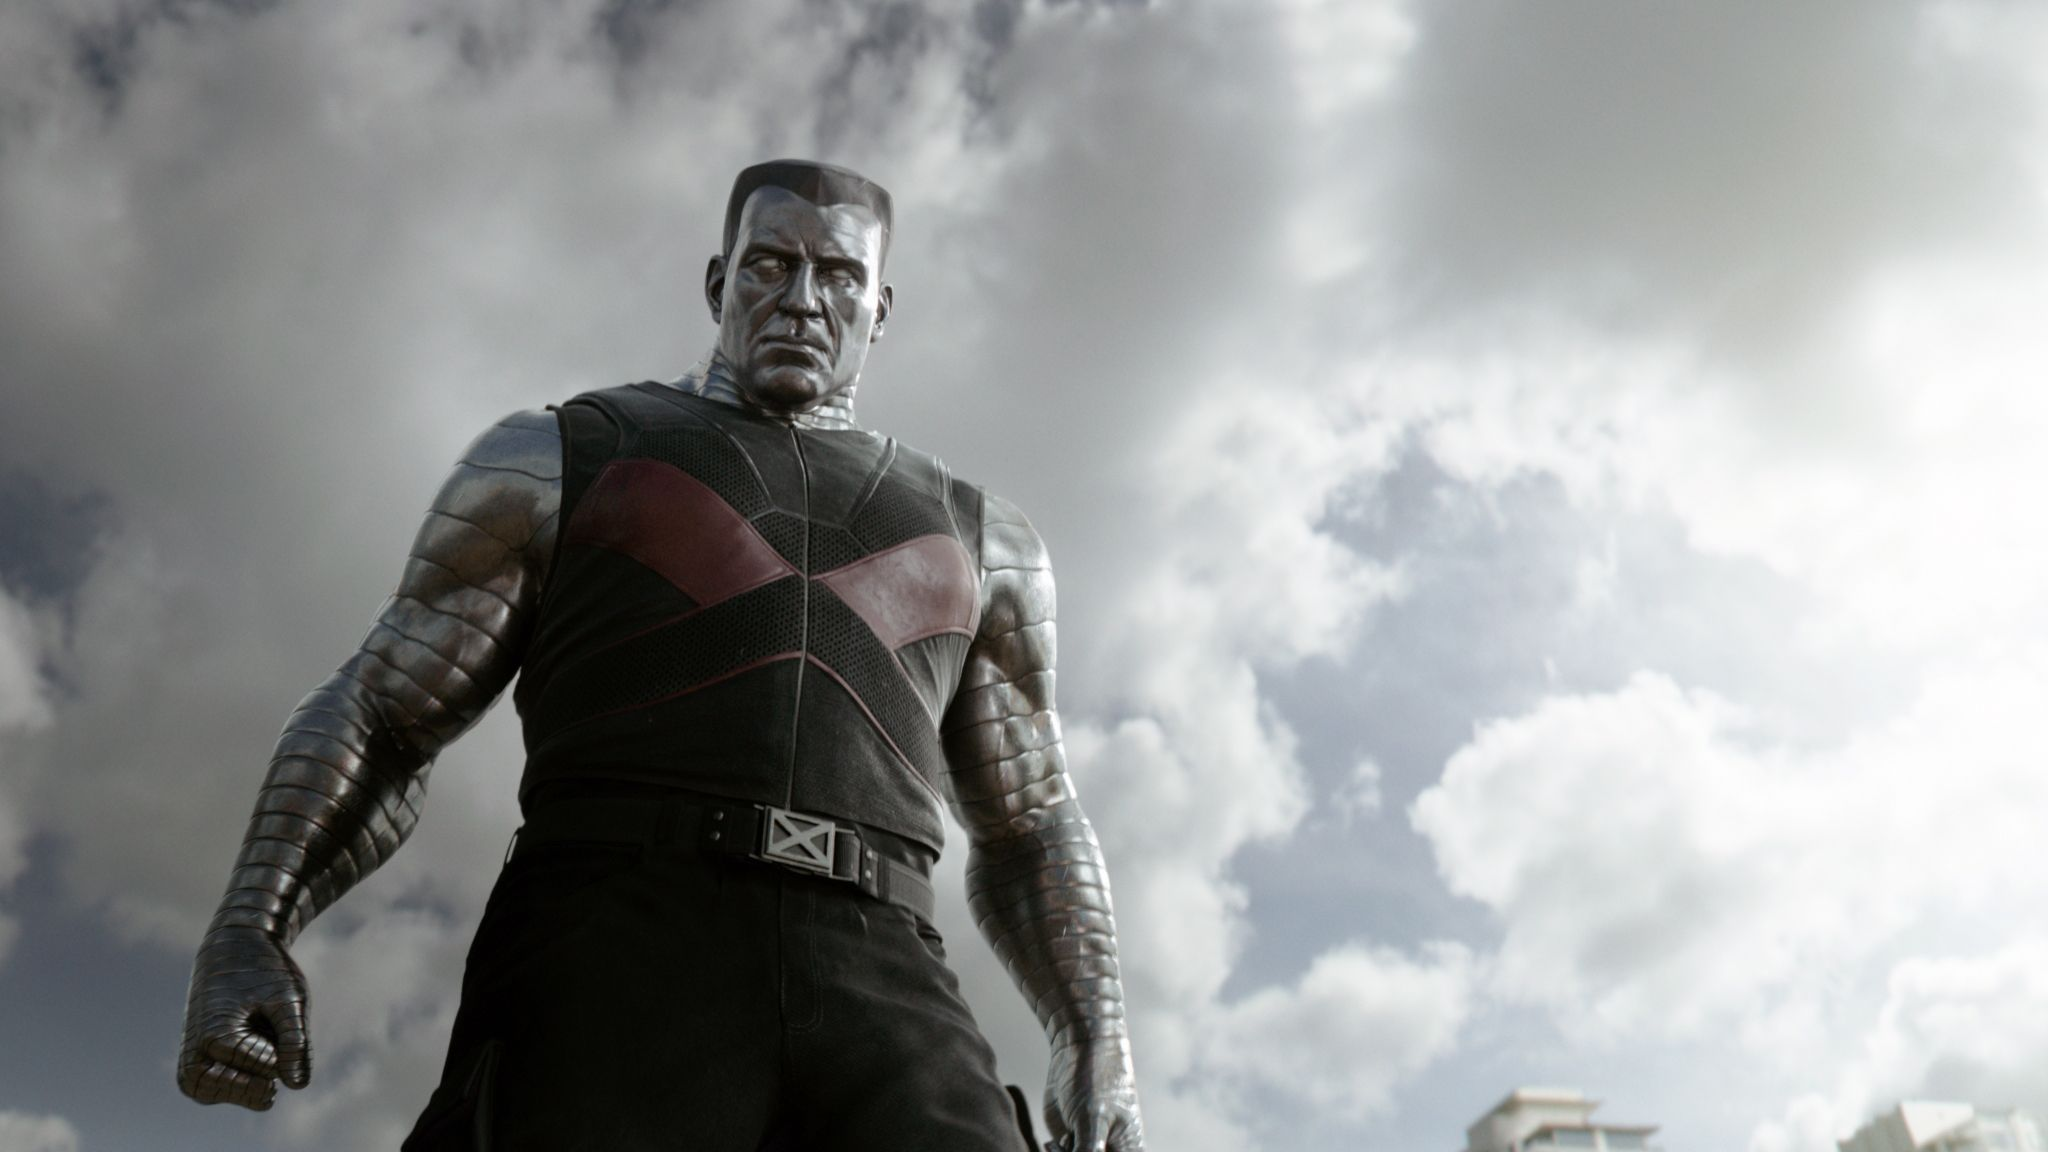 http://cdn.collider.com/wp-content/uploads/2015/08/colossus-deadpool-movie-image.jpg